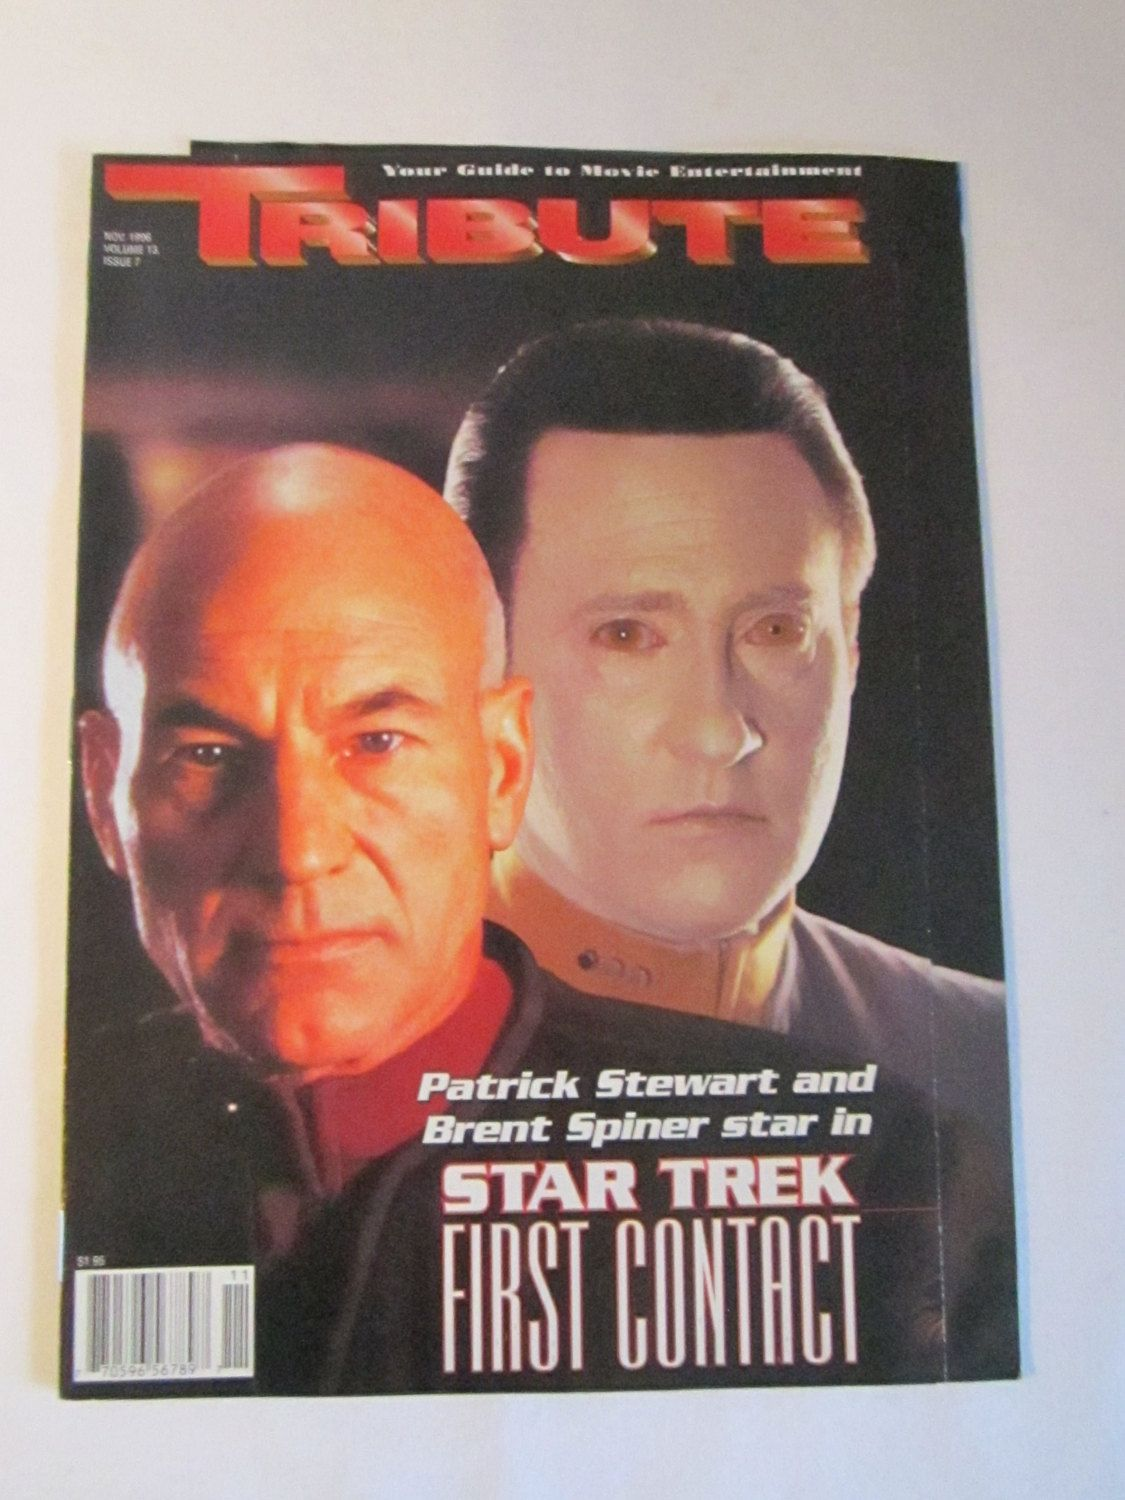 Vintage TRIBUTE magazine   Star Trek first contact   with Patrick Stewart and Brent Spinner 1996 by TashasVintages on Etsy